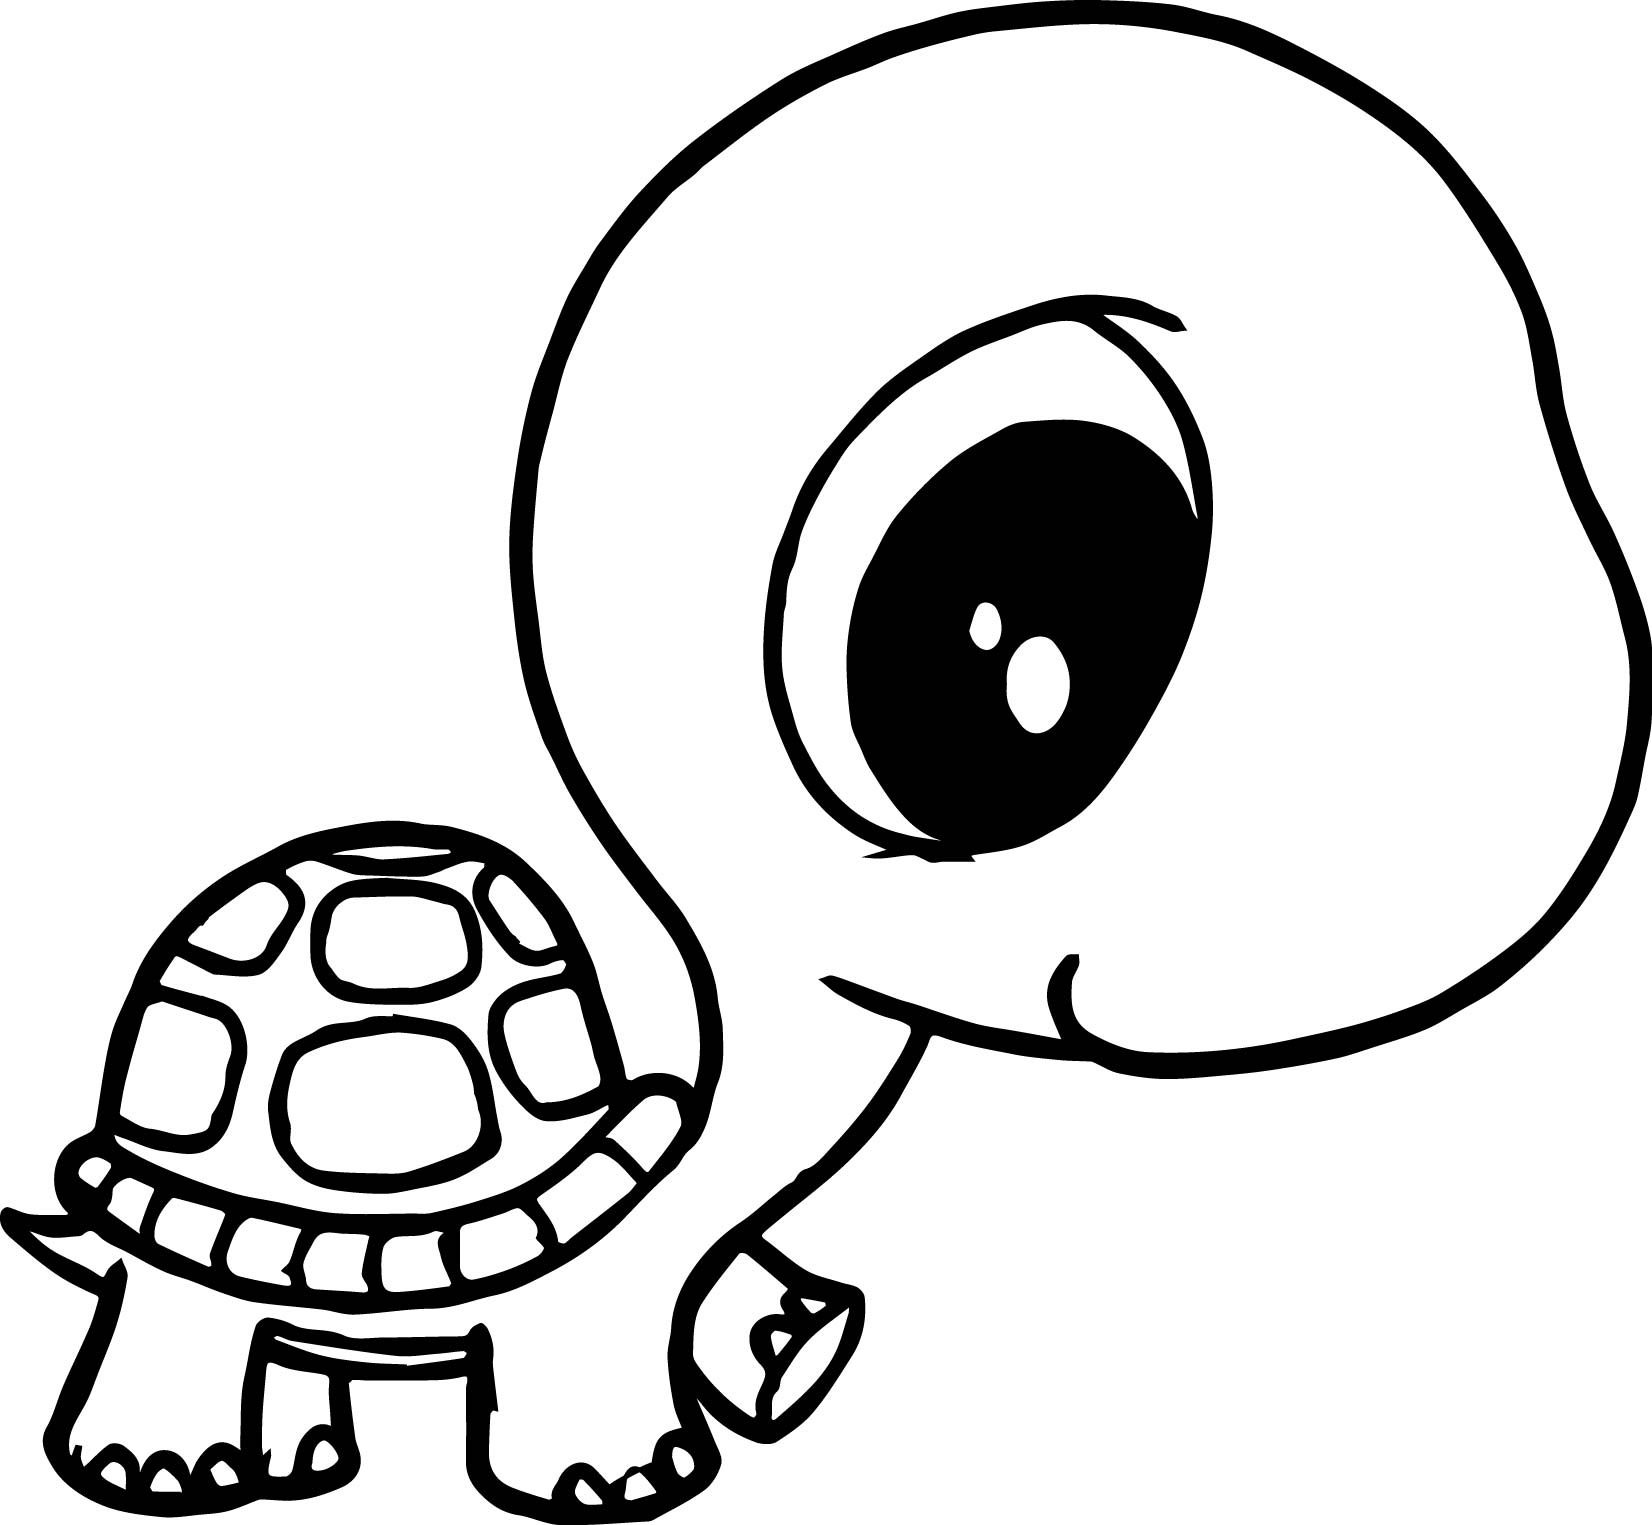 tortoise coloring page red eared slider turtle coloring pages k5 worksheets tortoise page coloring